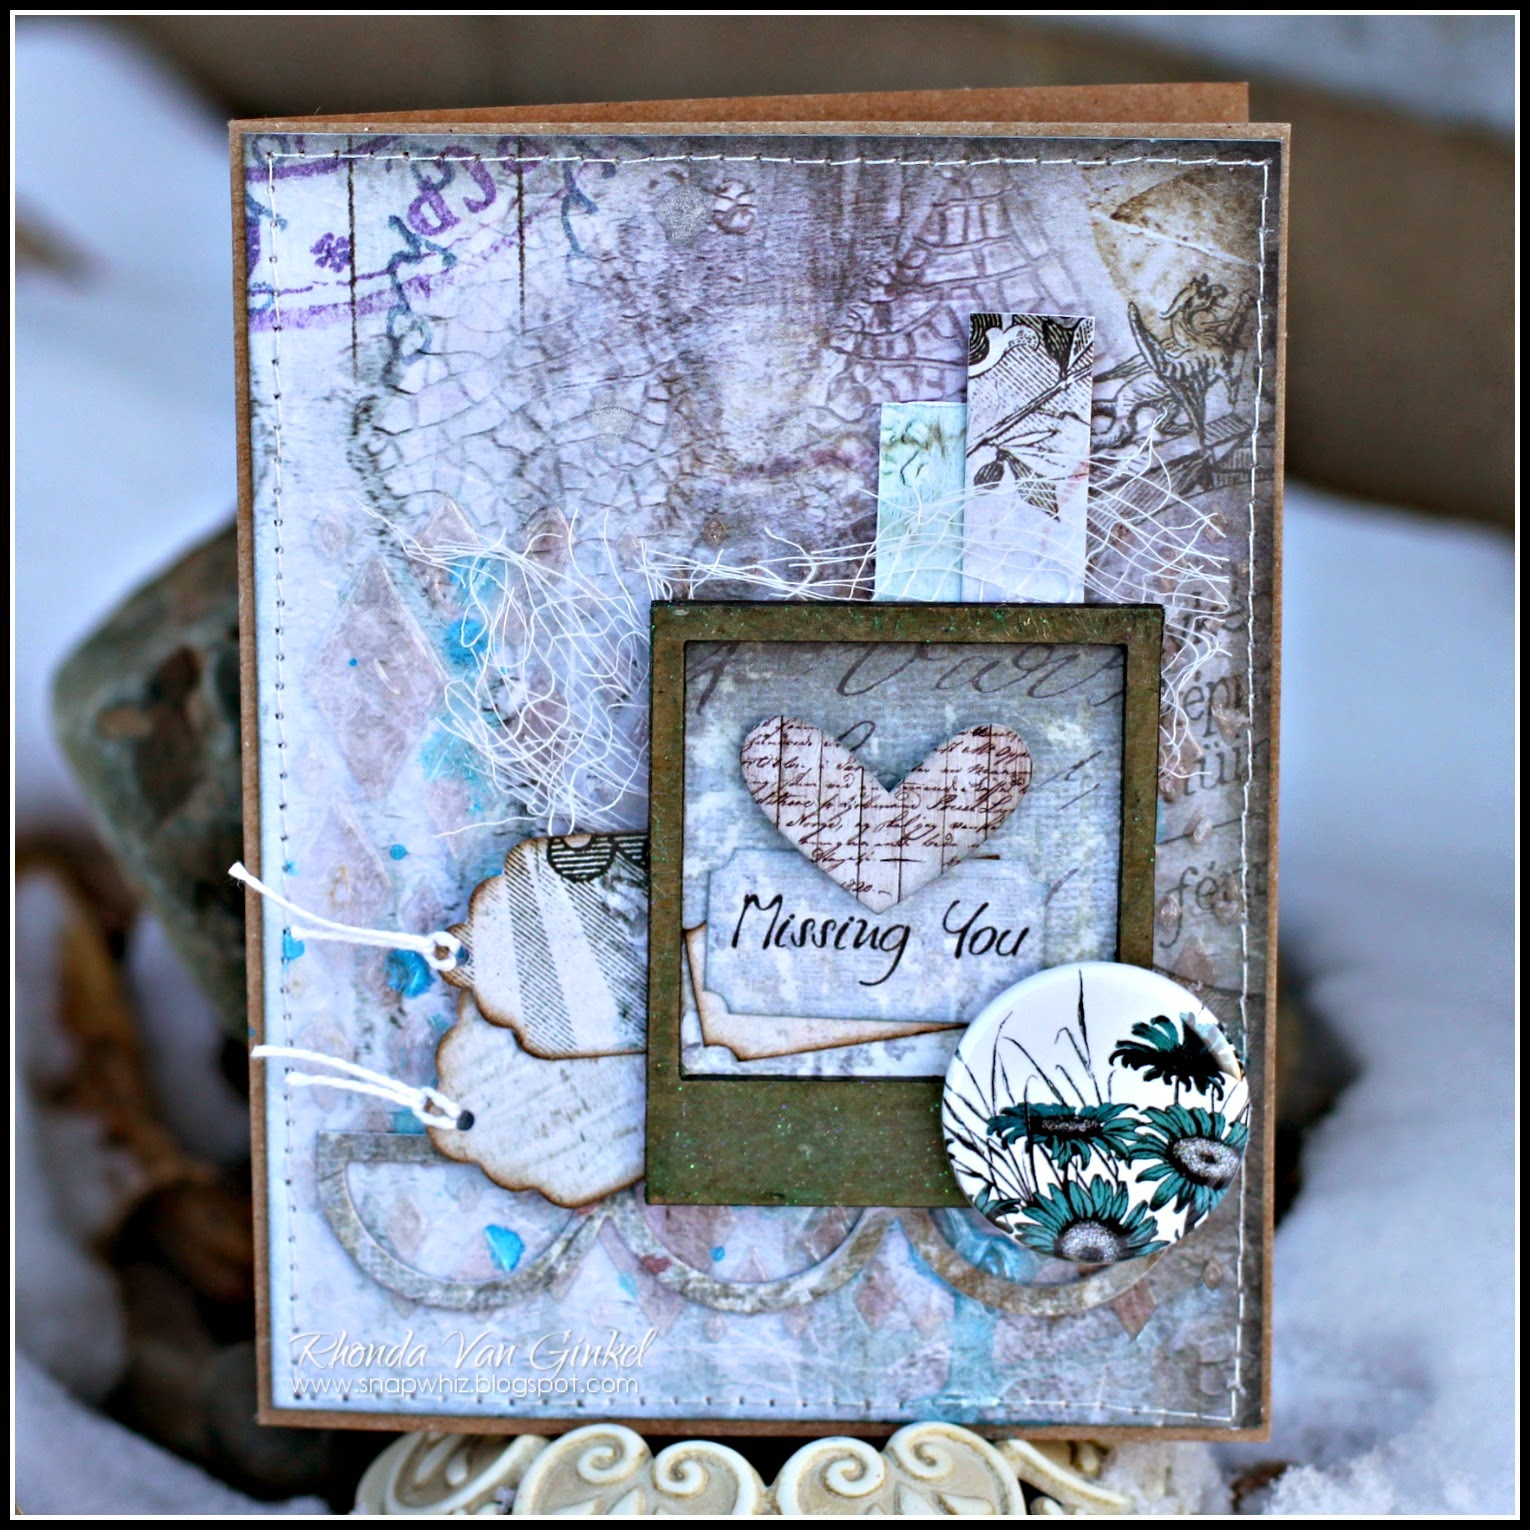 Missing You Card by Rhonda Van Ginkel for UmWowStudio Featuring Miniature Polaroid Frame